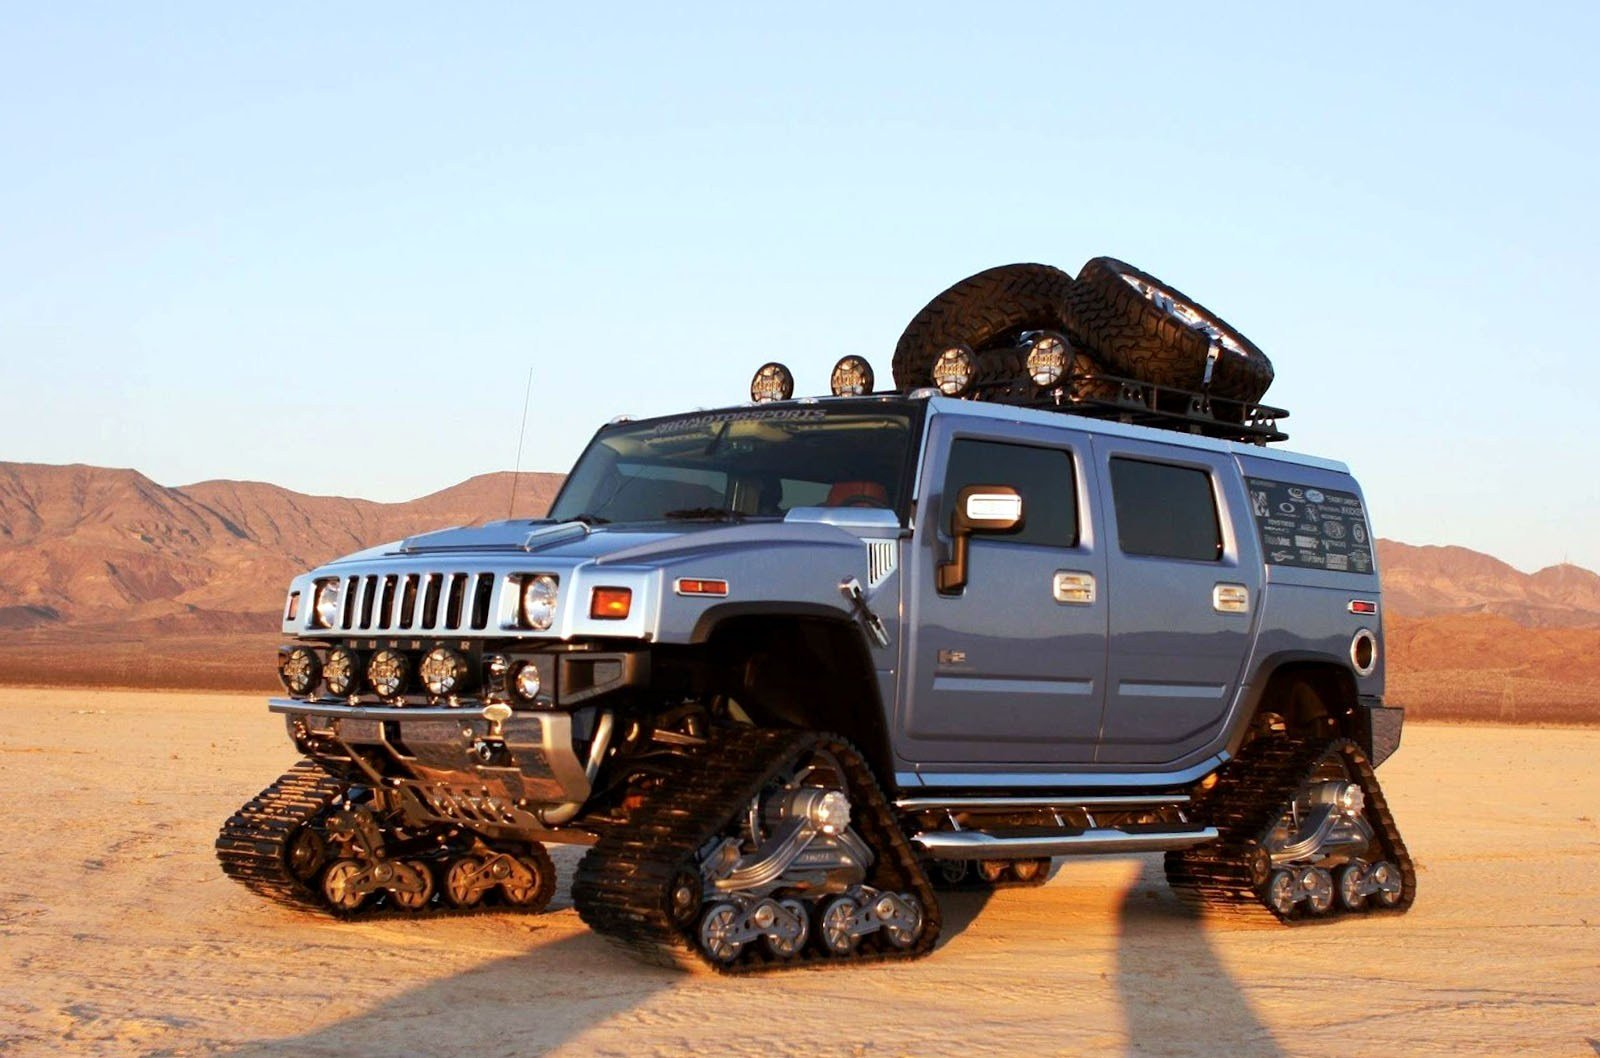 Latest Amazing Silver Hummer Car Wallpapers Hd Desktop And Free Download